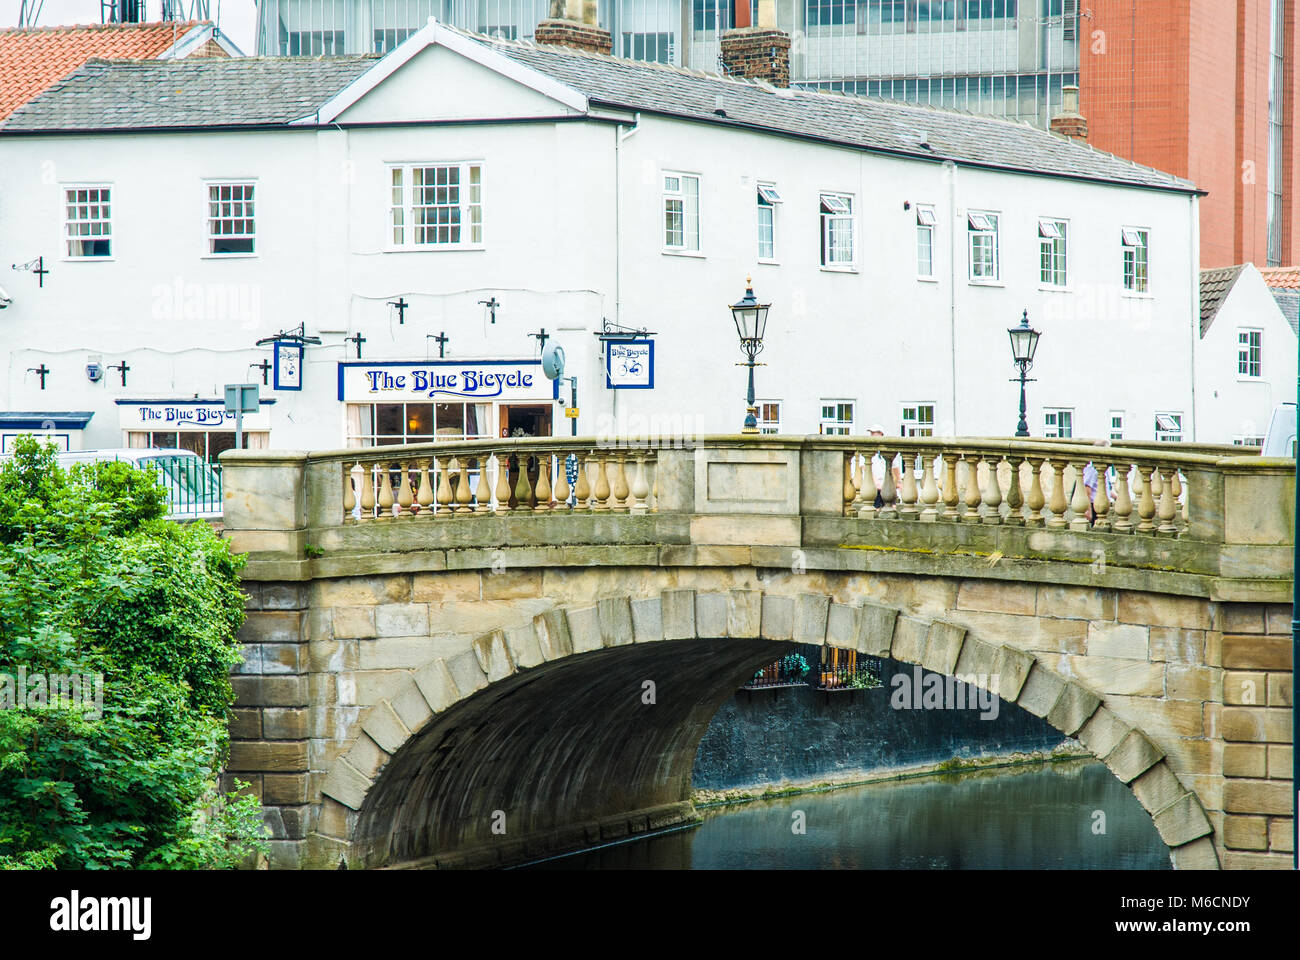 The Blue Bicycle restaurant in Fossgate, York, North Yorkshire - Stock Image